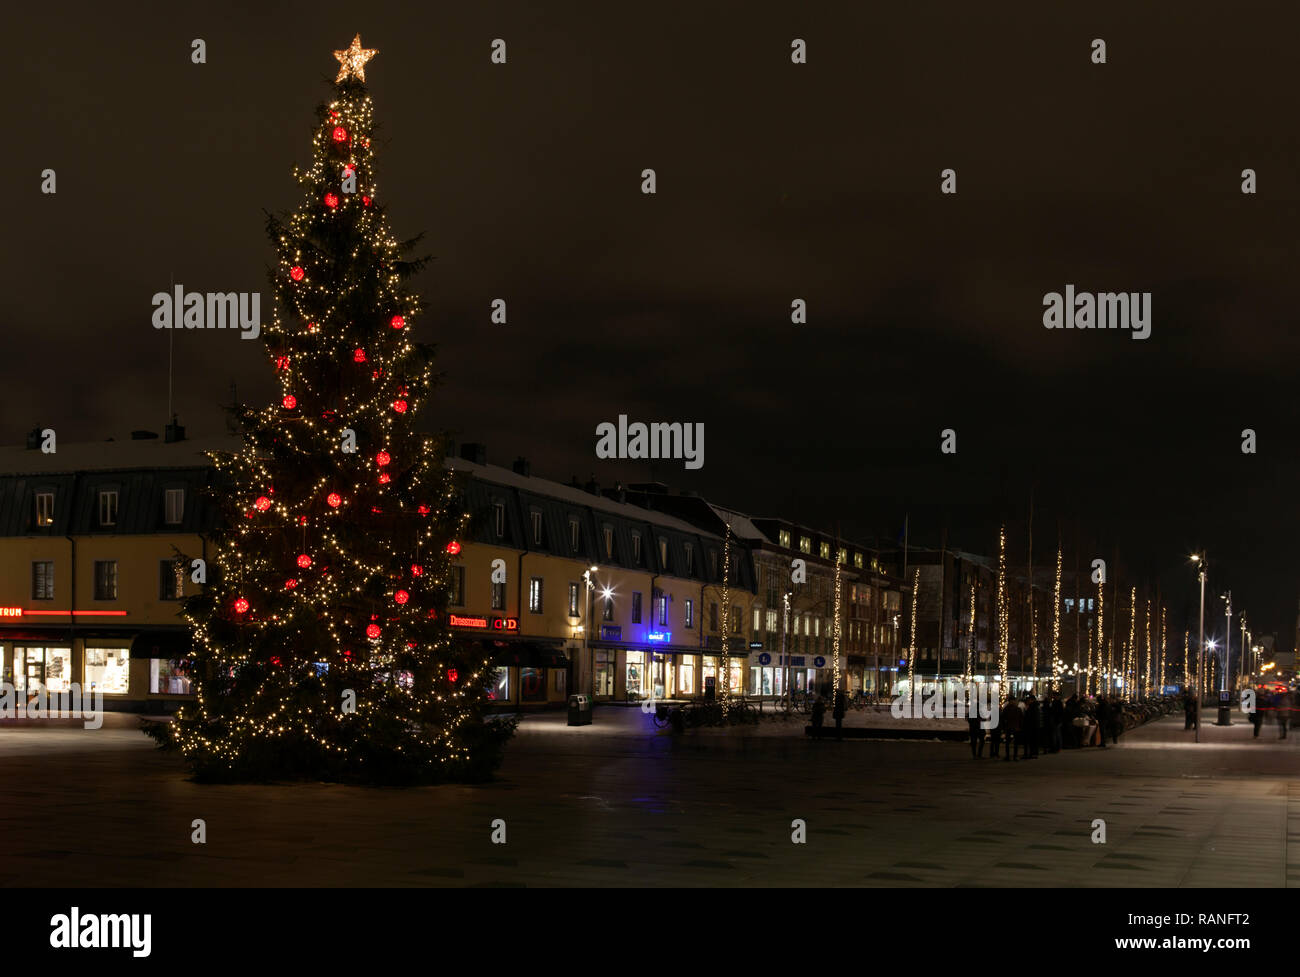 Umea Sweden On December 18 2018 Evening View Of The City Centre